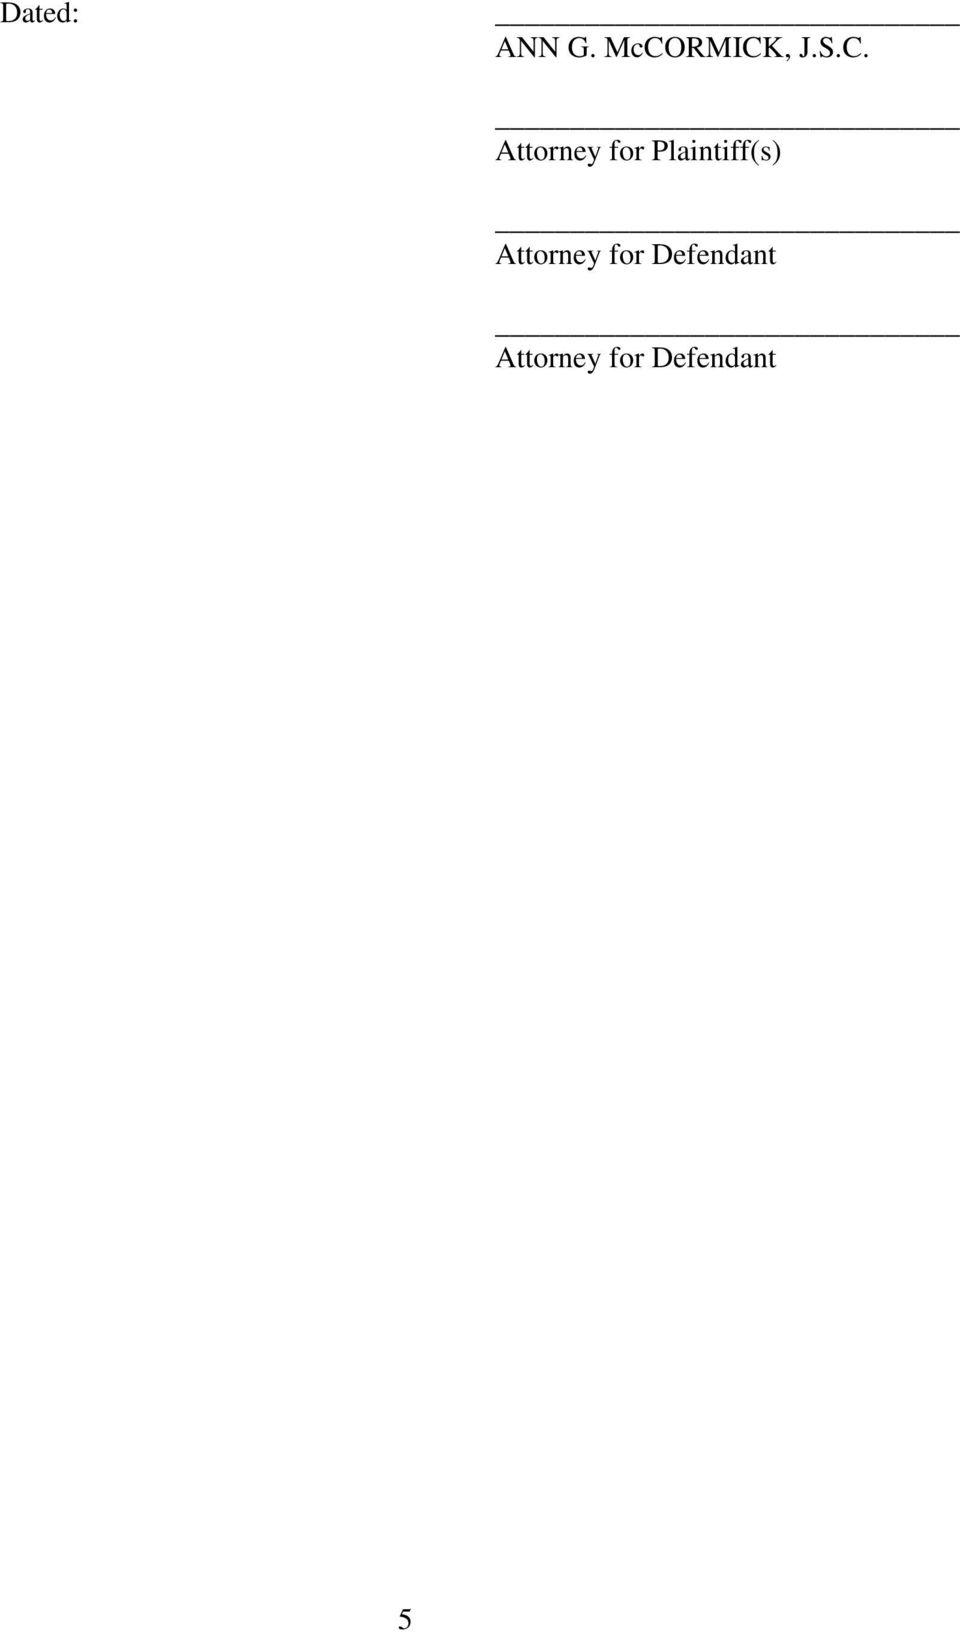 Plaintiff(s) Attorney for